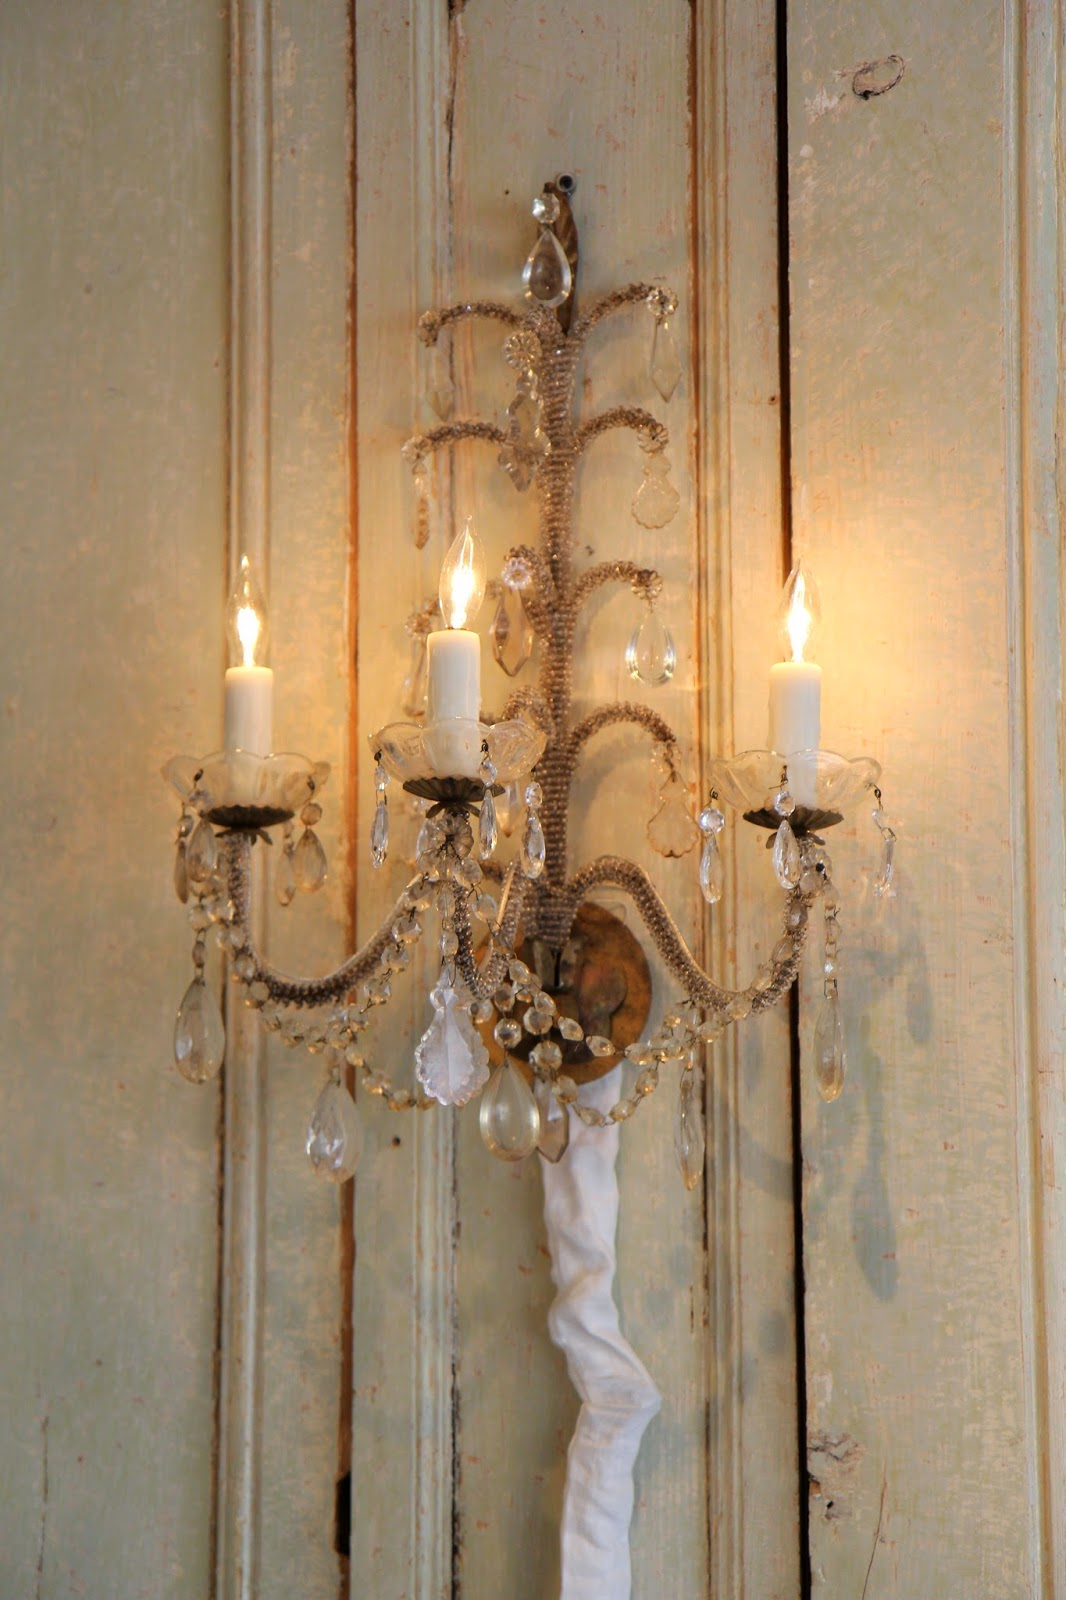 Macaroni beaded sconce; Inspirational Chandeliers and Sconces; Nora's Nest